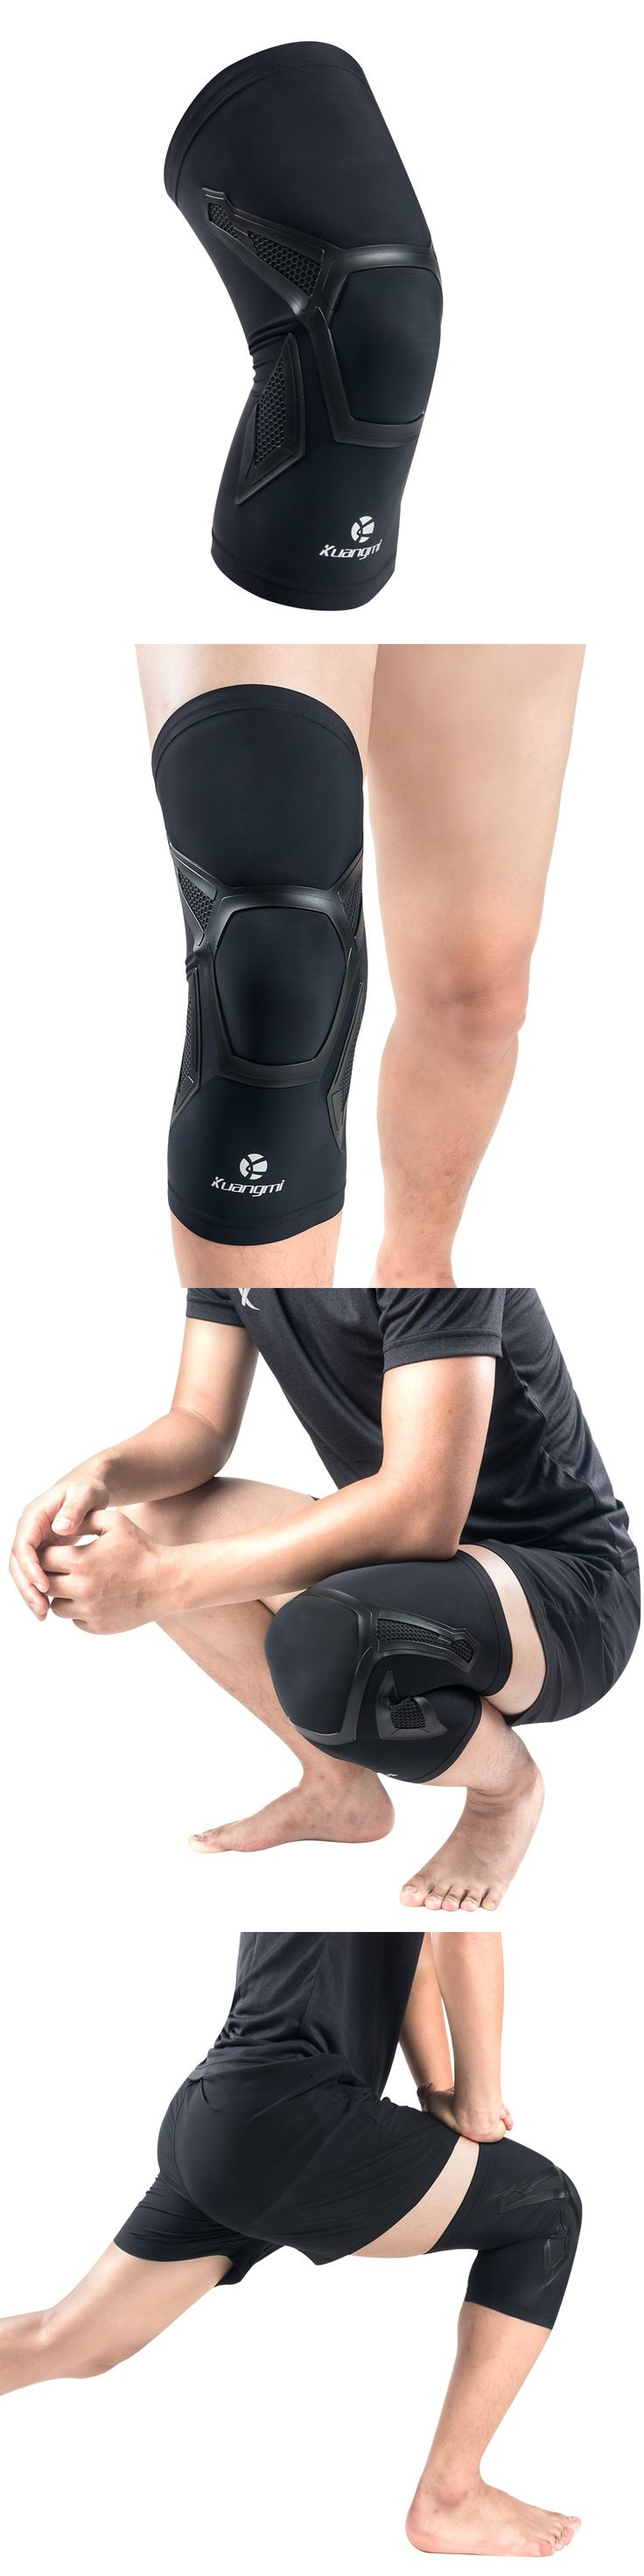 Kuangmi 1 Piece Knee Sleeve Support Compression Brace Anti Slip Pain Relief for Sports Arthritis Patella Joint Injury Recovery